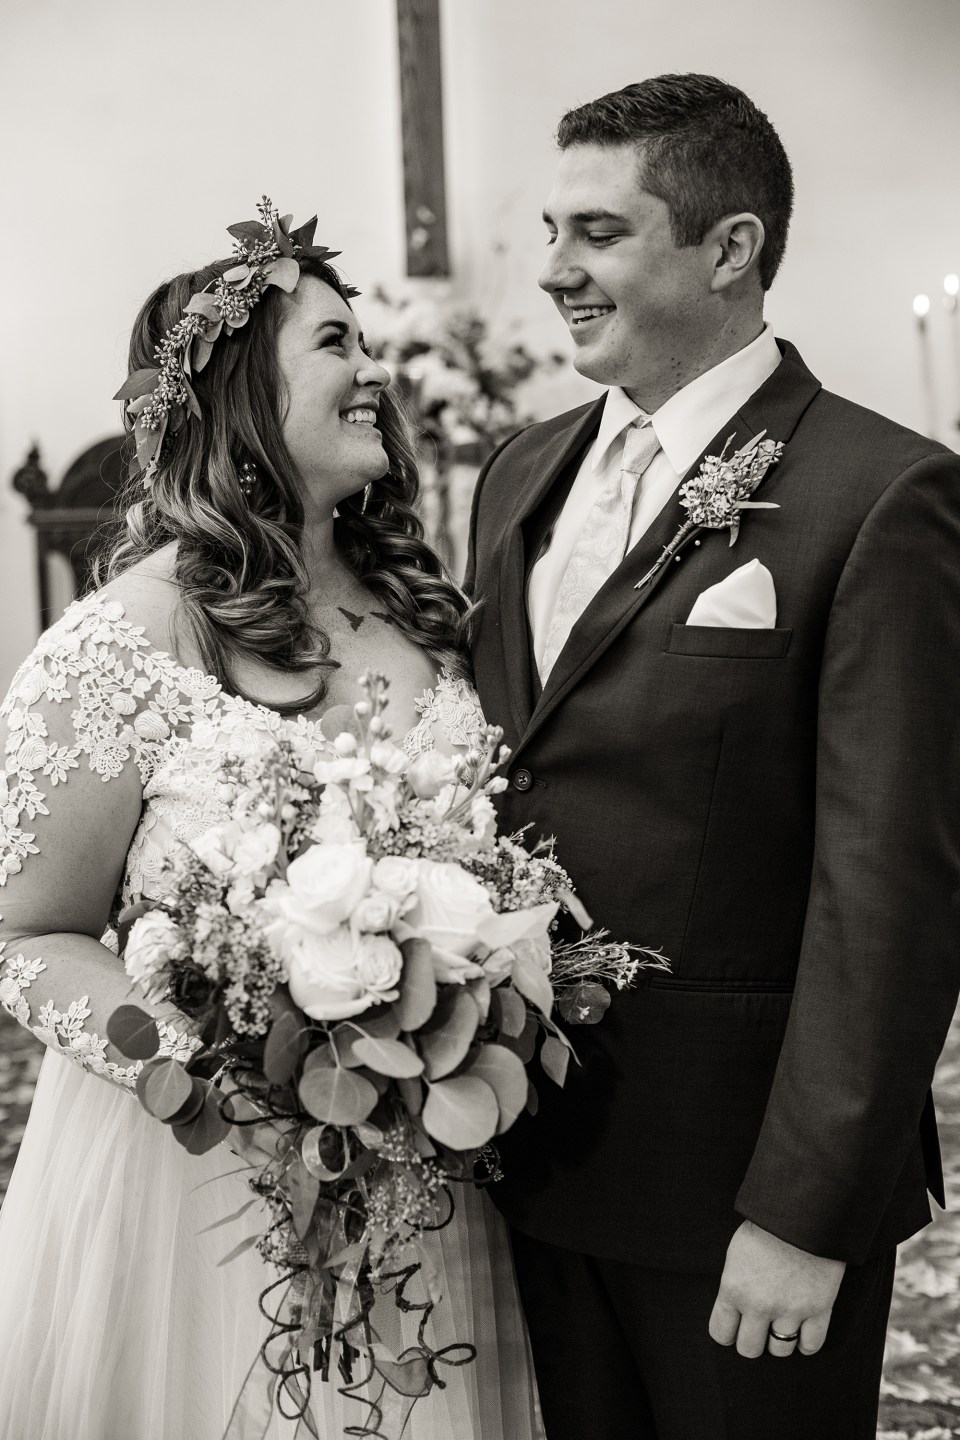 Bride and groom smile at each other after their wedding at First Presbyterian Church